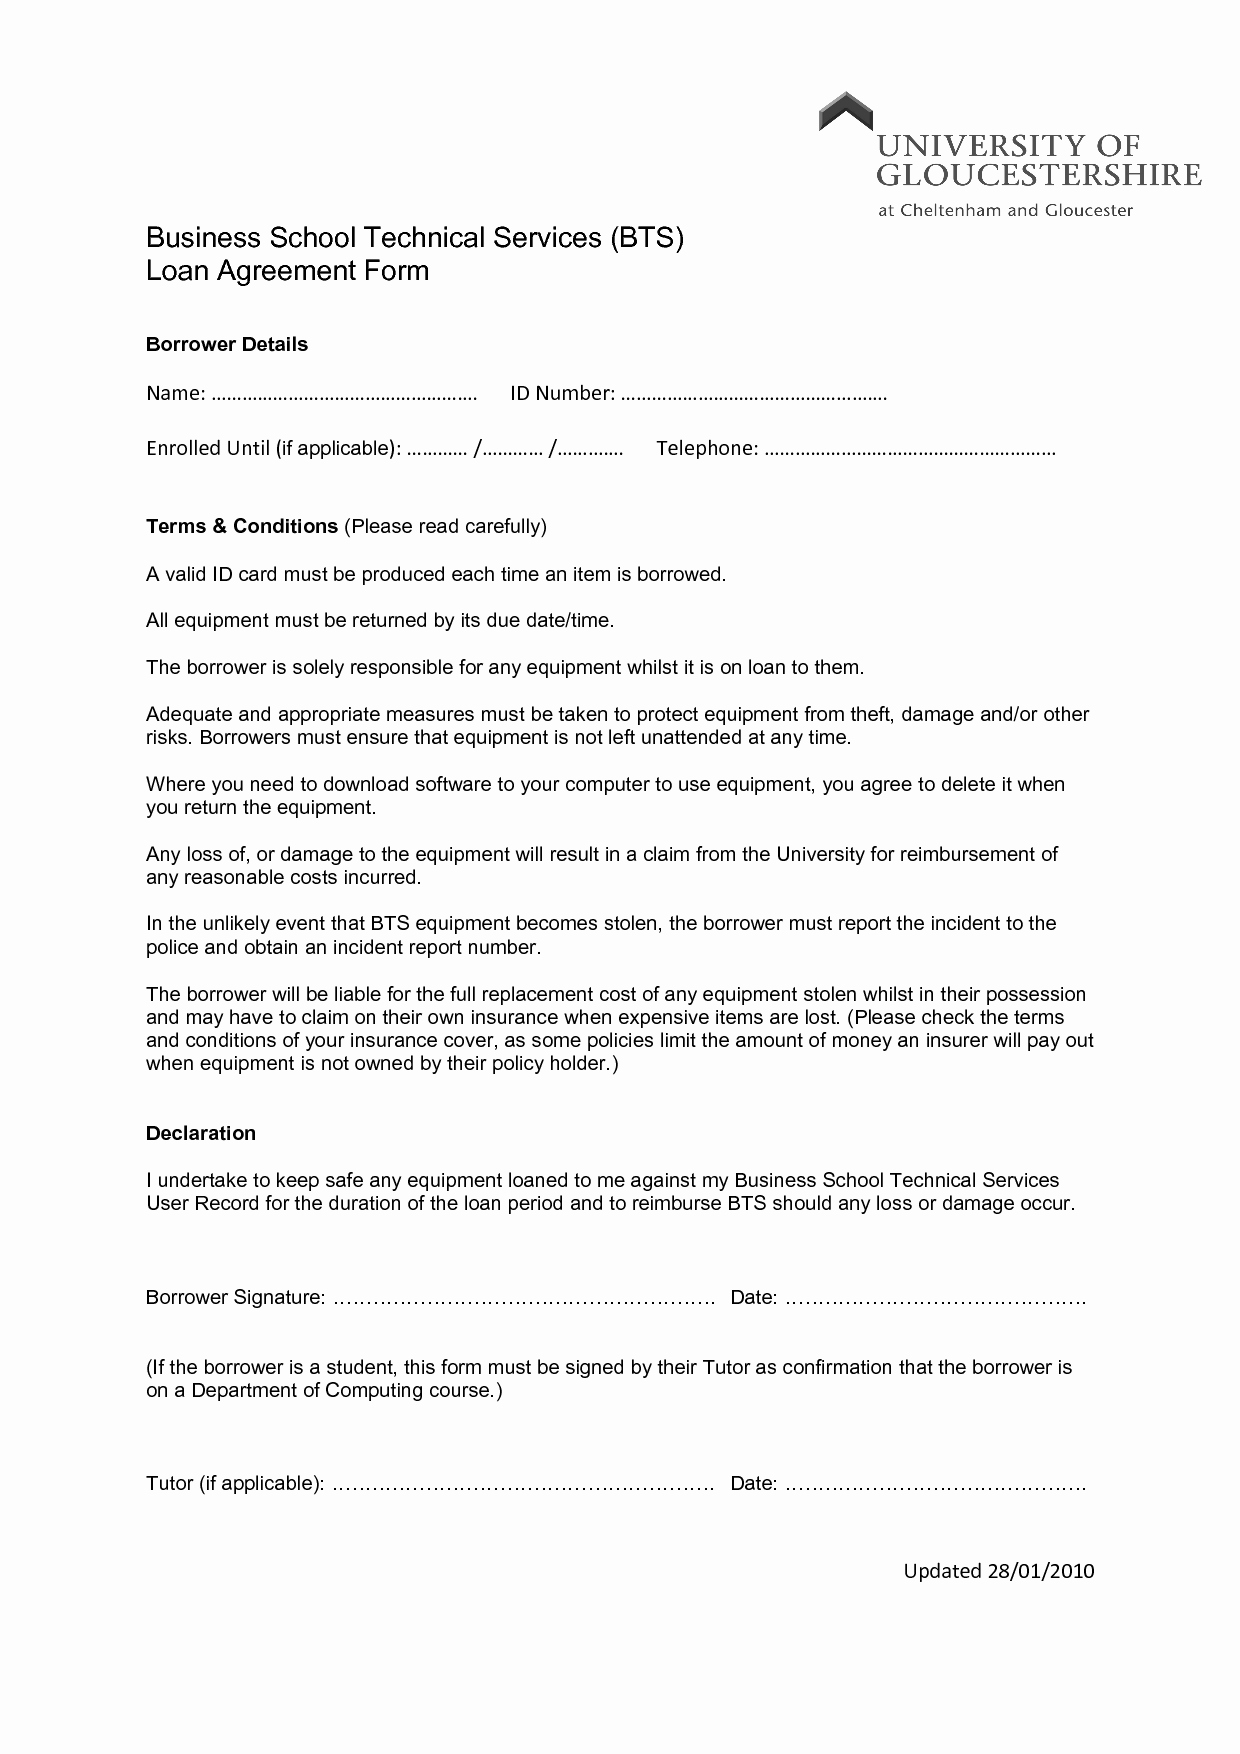 Contract Summary Template Awesome Printable Sample Loan Agreement form form